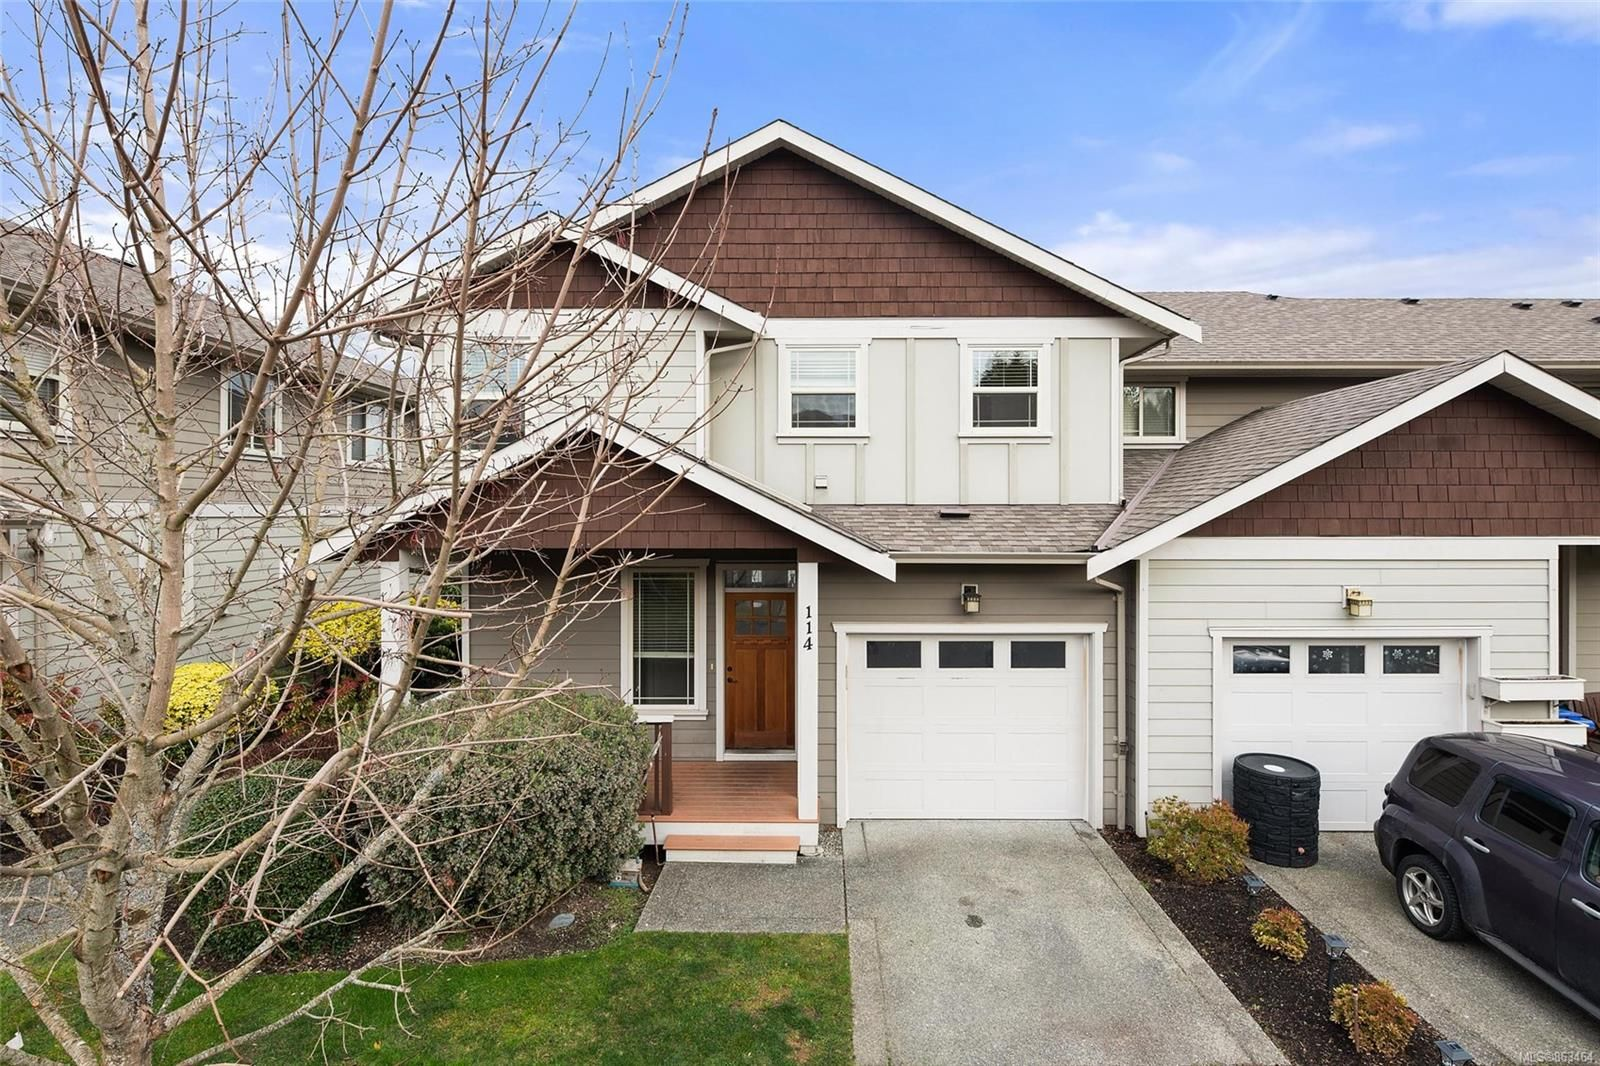 Main Photo: 114 6591 Arranwood Dr in : Sk Sooke Vill Core Row/Townhouse for sale (Sooke)  : MLS®# 863464